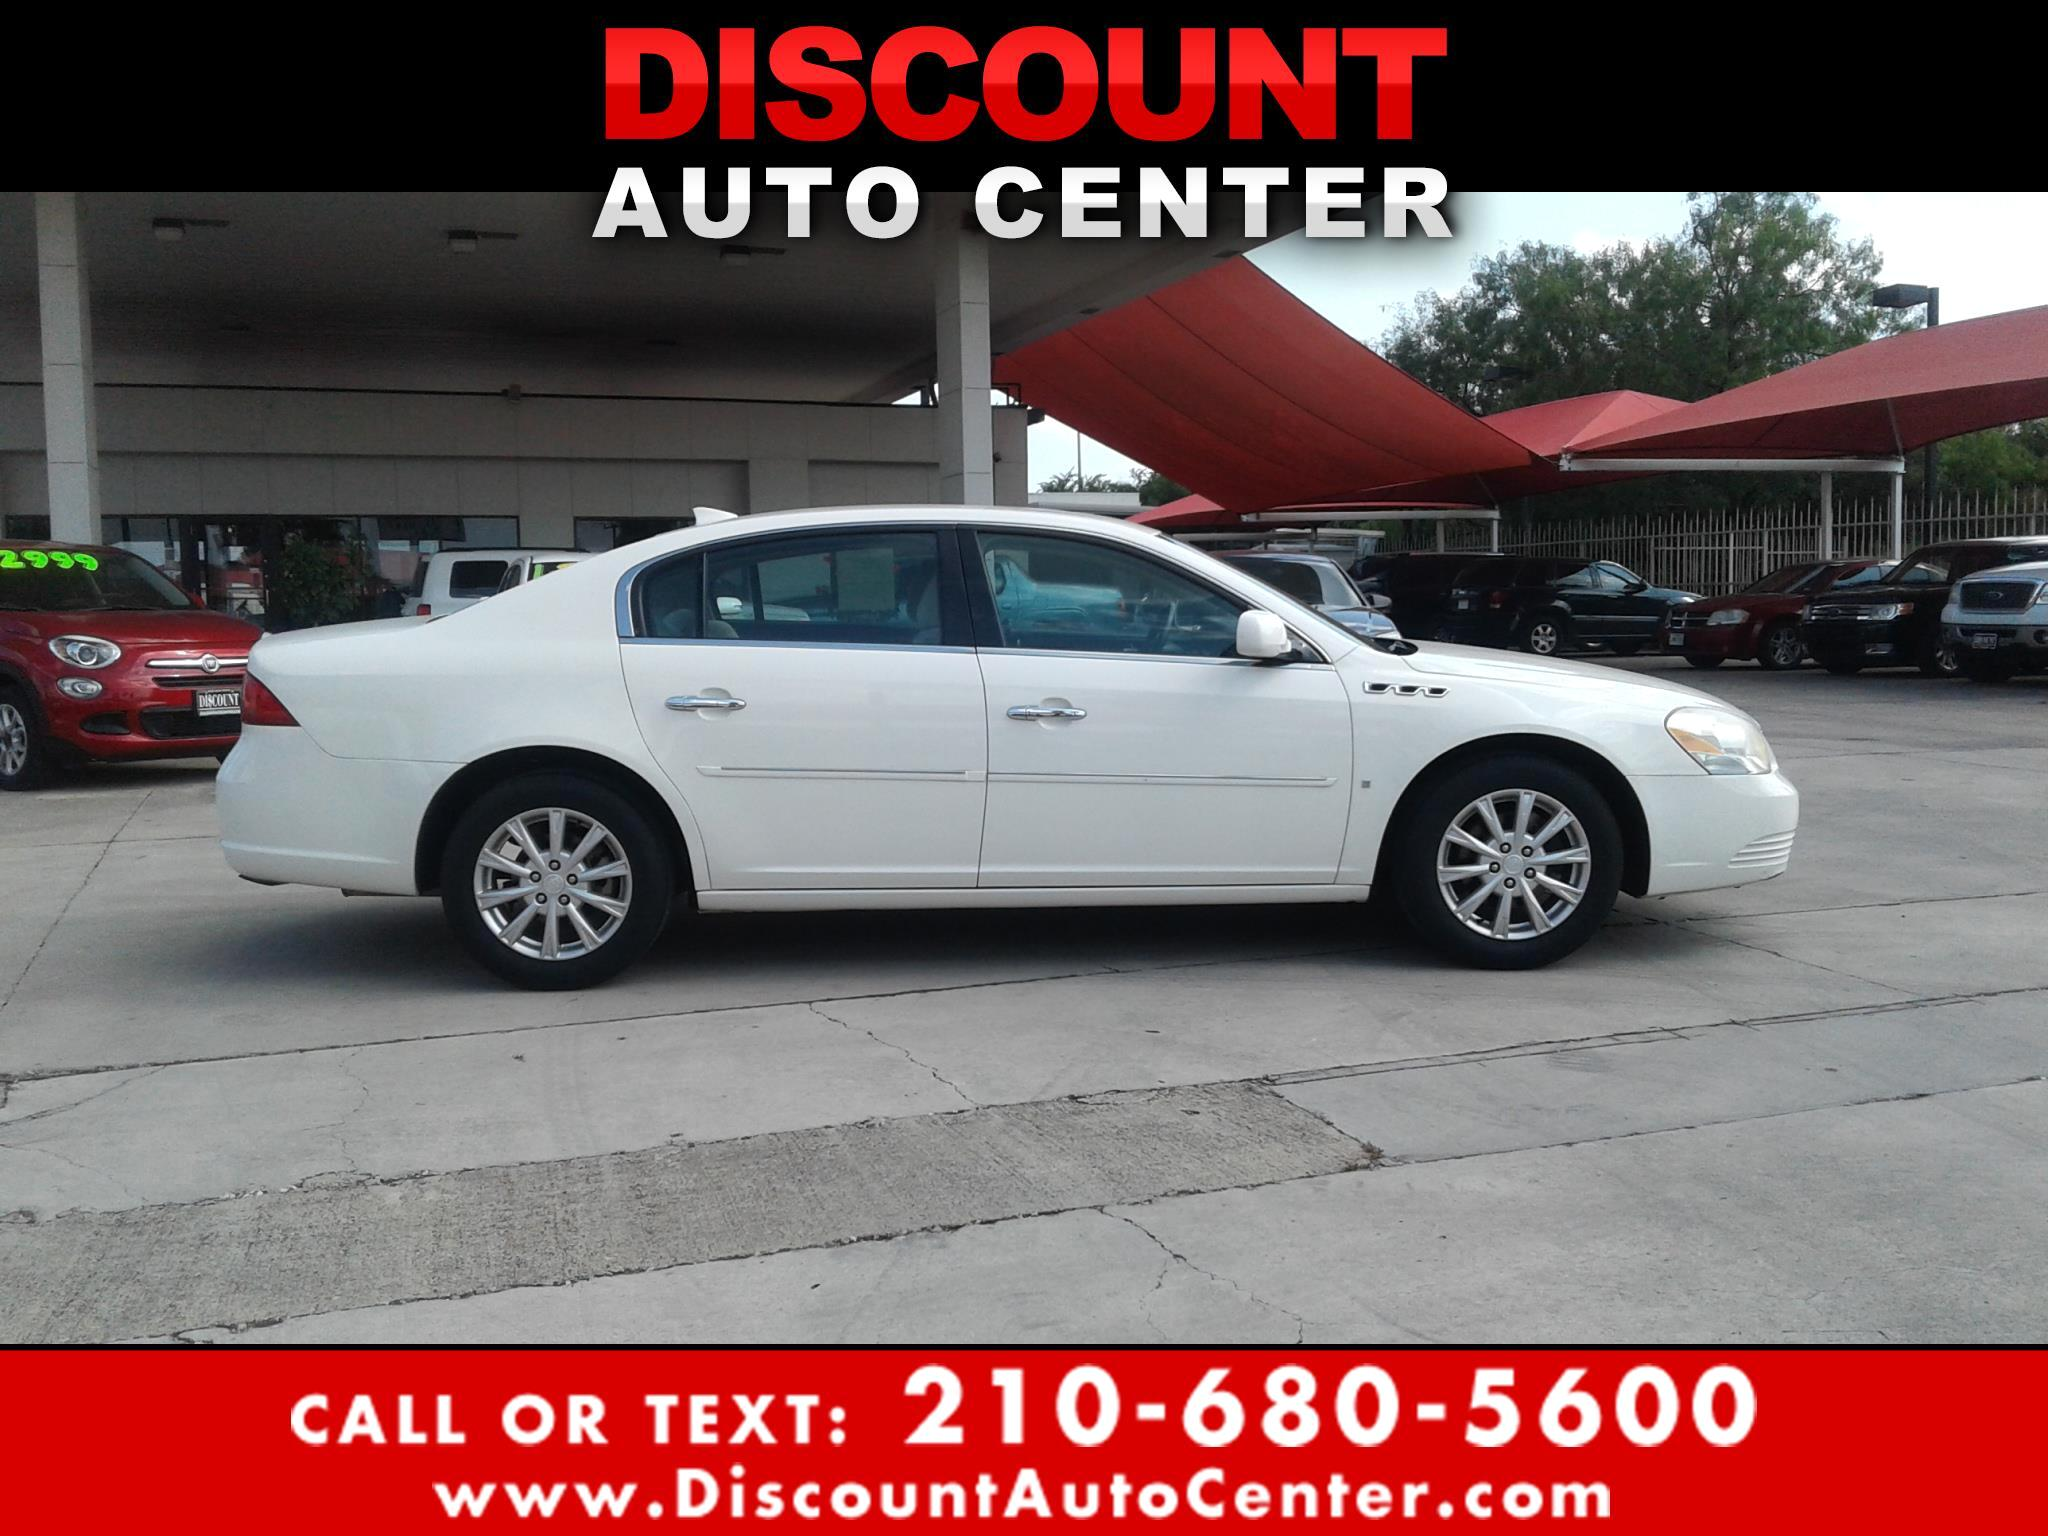 2009 Buick Lucerne 4dr Sdn CX